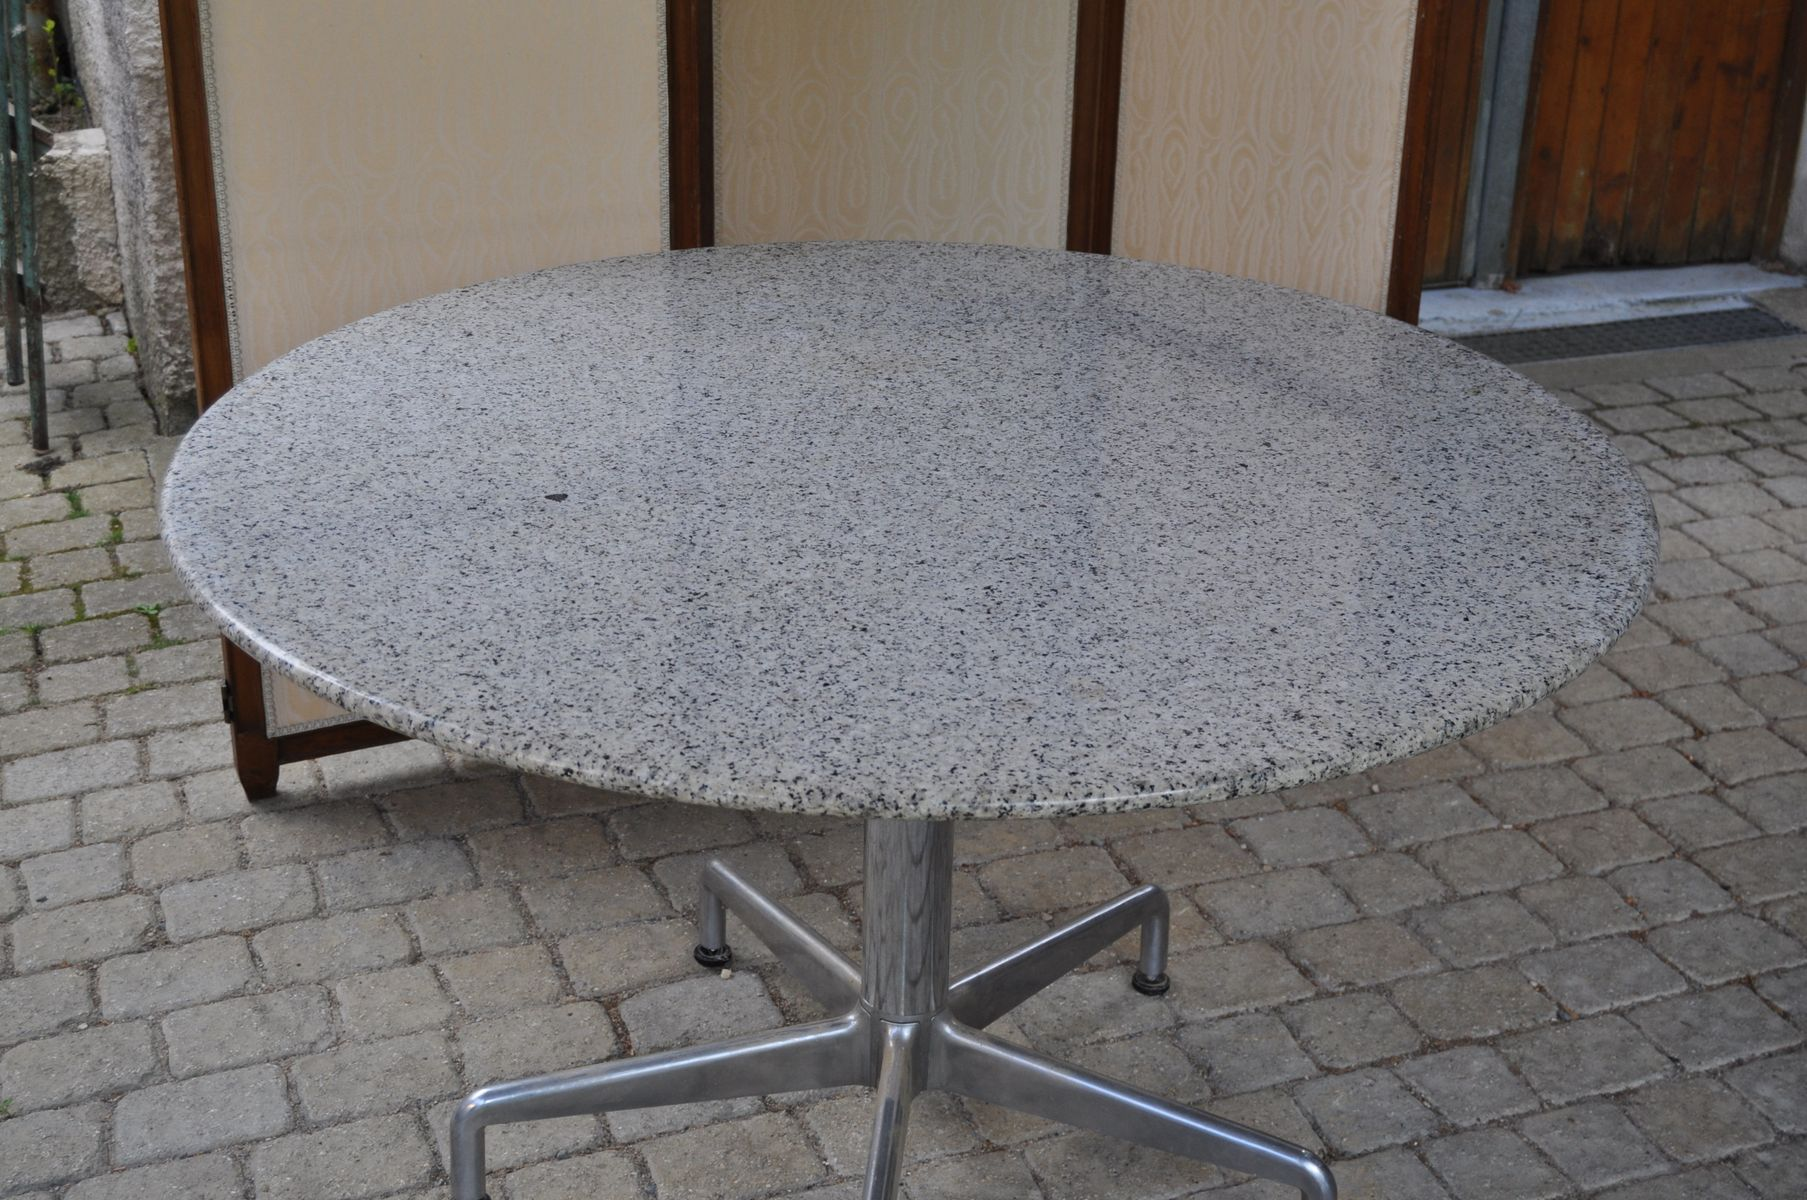 Vintage French Granite Round Dining Table for sale at Pamono : vintage french granite round dining table 2 from www.pamono.co.uk size 1807 x 1200 jpeg 300kB